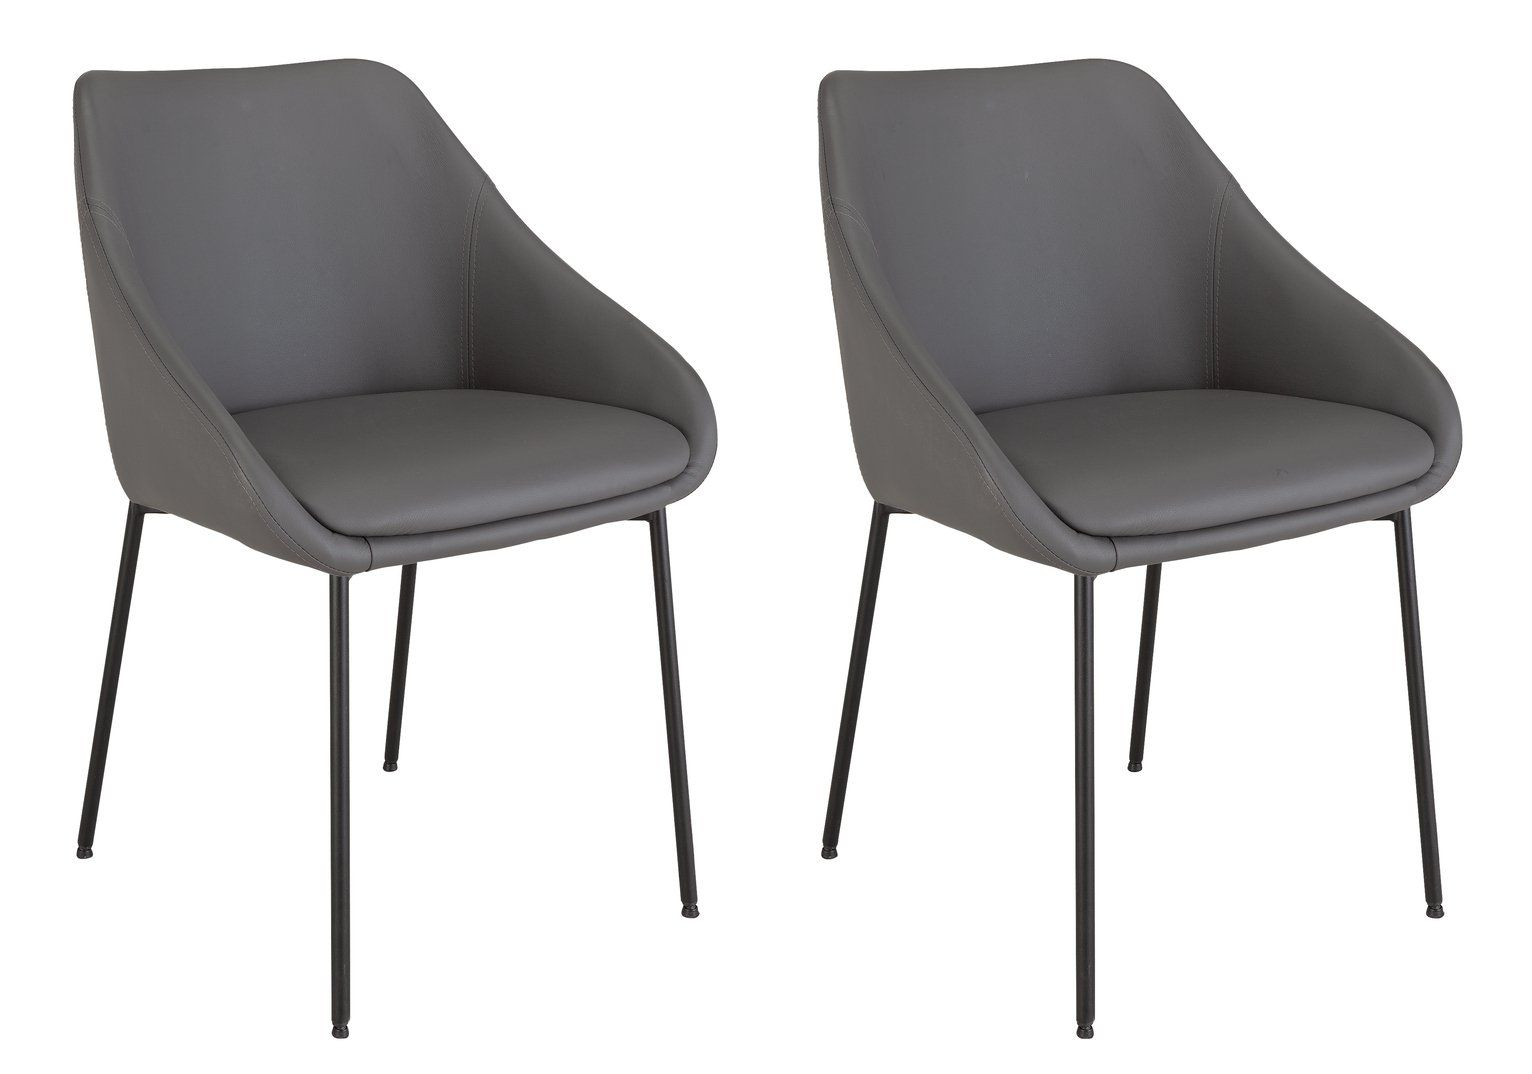 Argos Home Kanso Pair Of Faux Leather Dining Chairs Grey In 2020